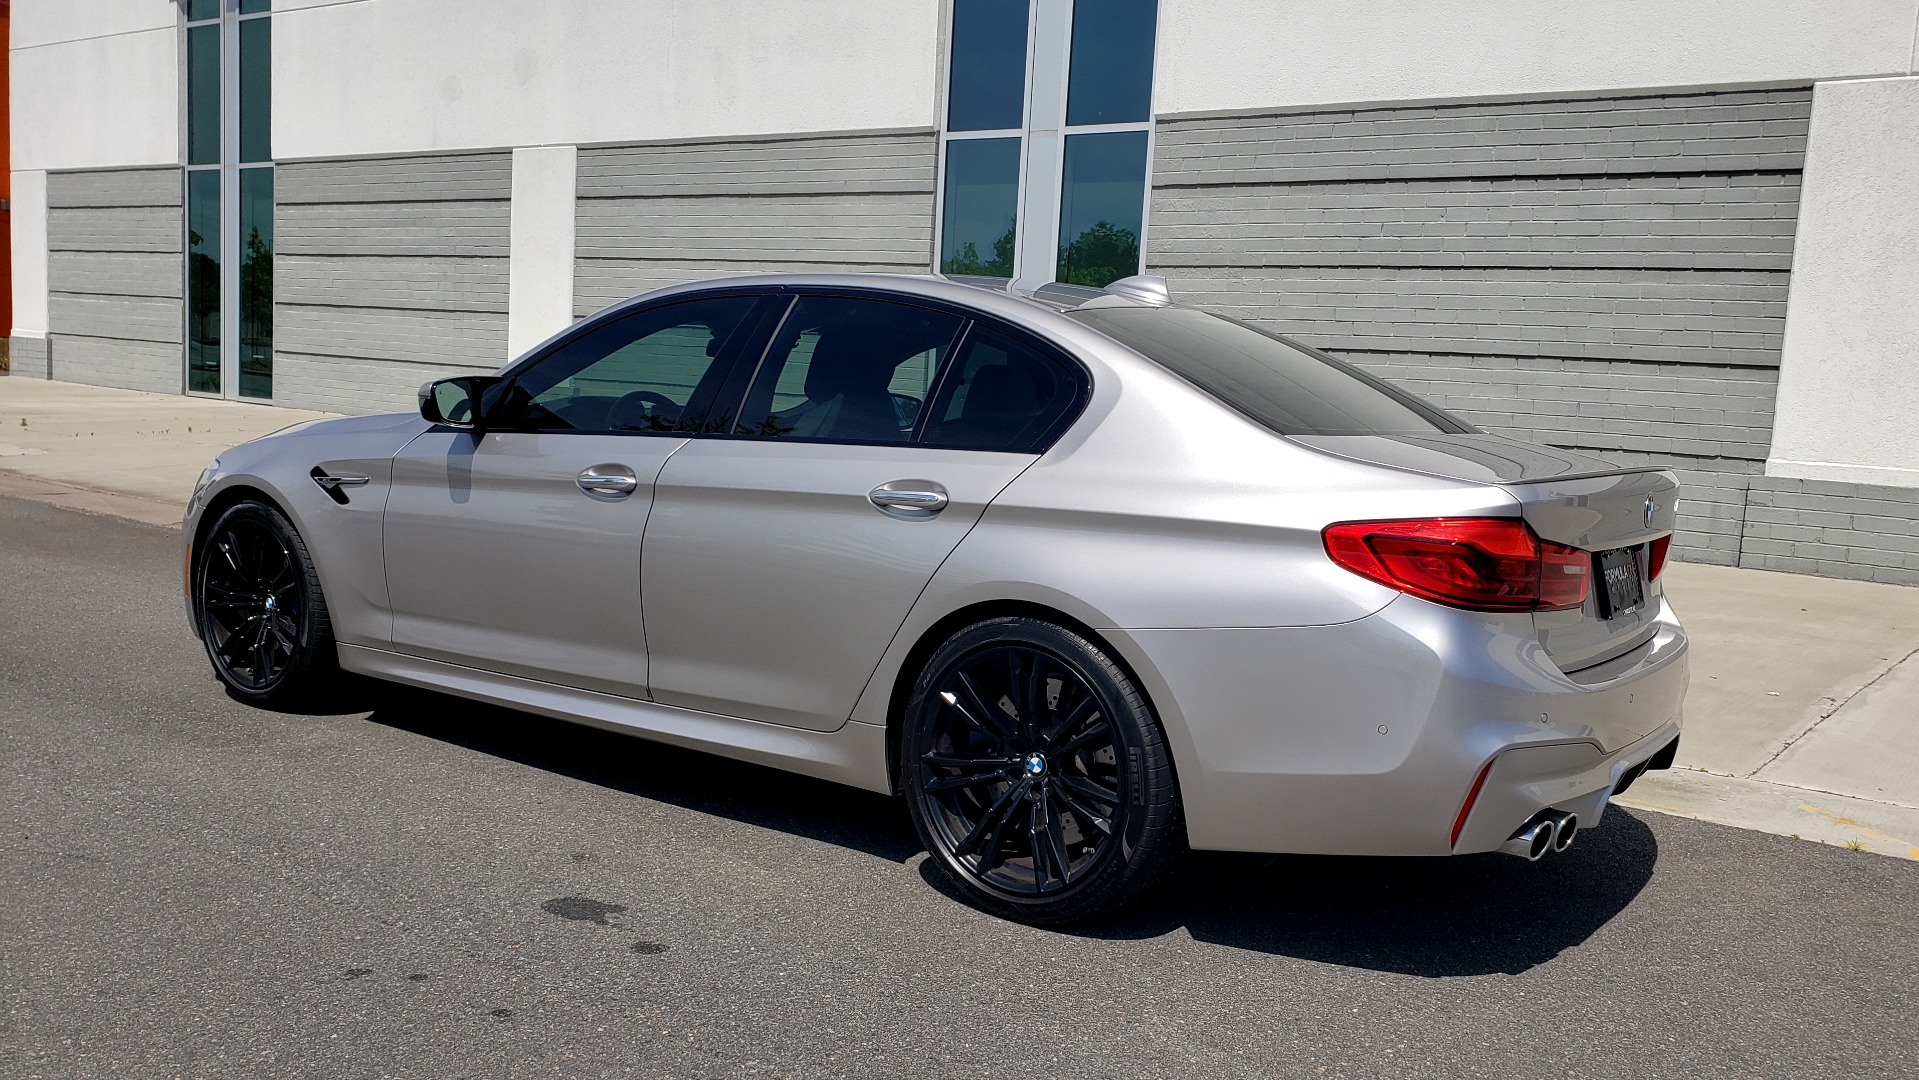 Used 2018 BMW M5 SEDAN / EXEC PKG / DRVR ASST PLUS / MOONROOF / B&W SND for sale $81,495 at Formula Imports in Charlotte NC 28227 6